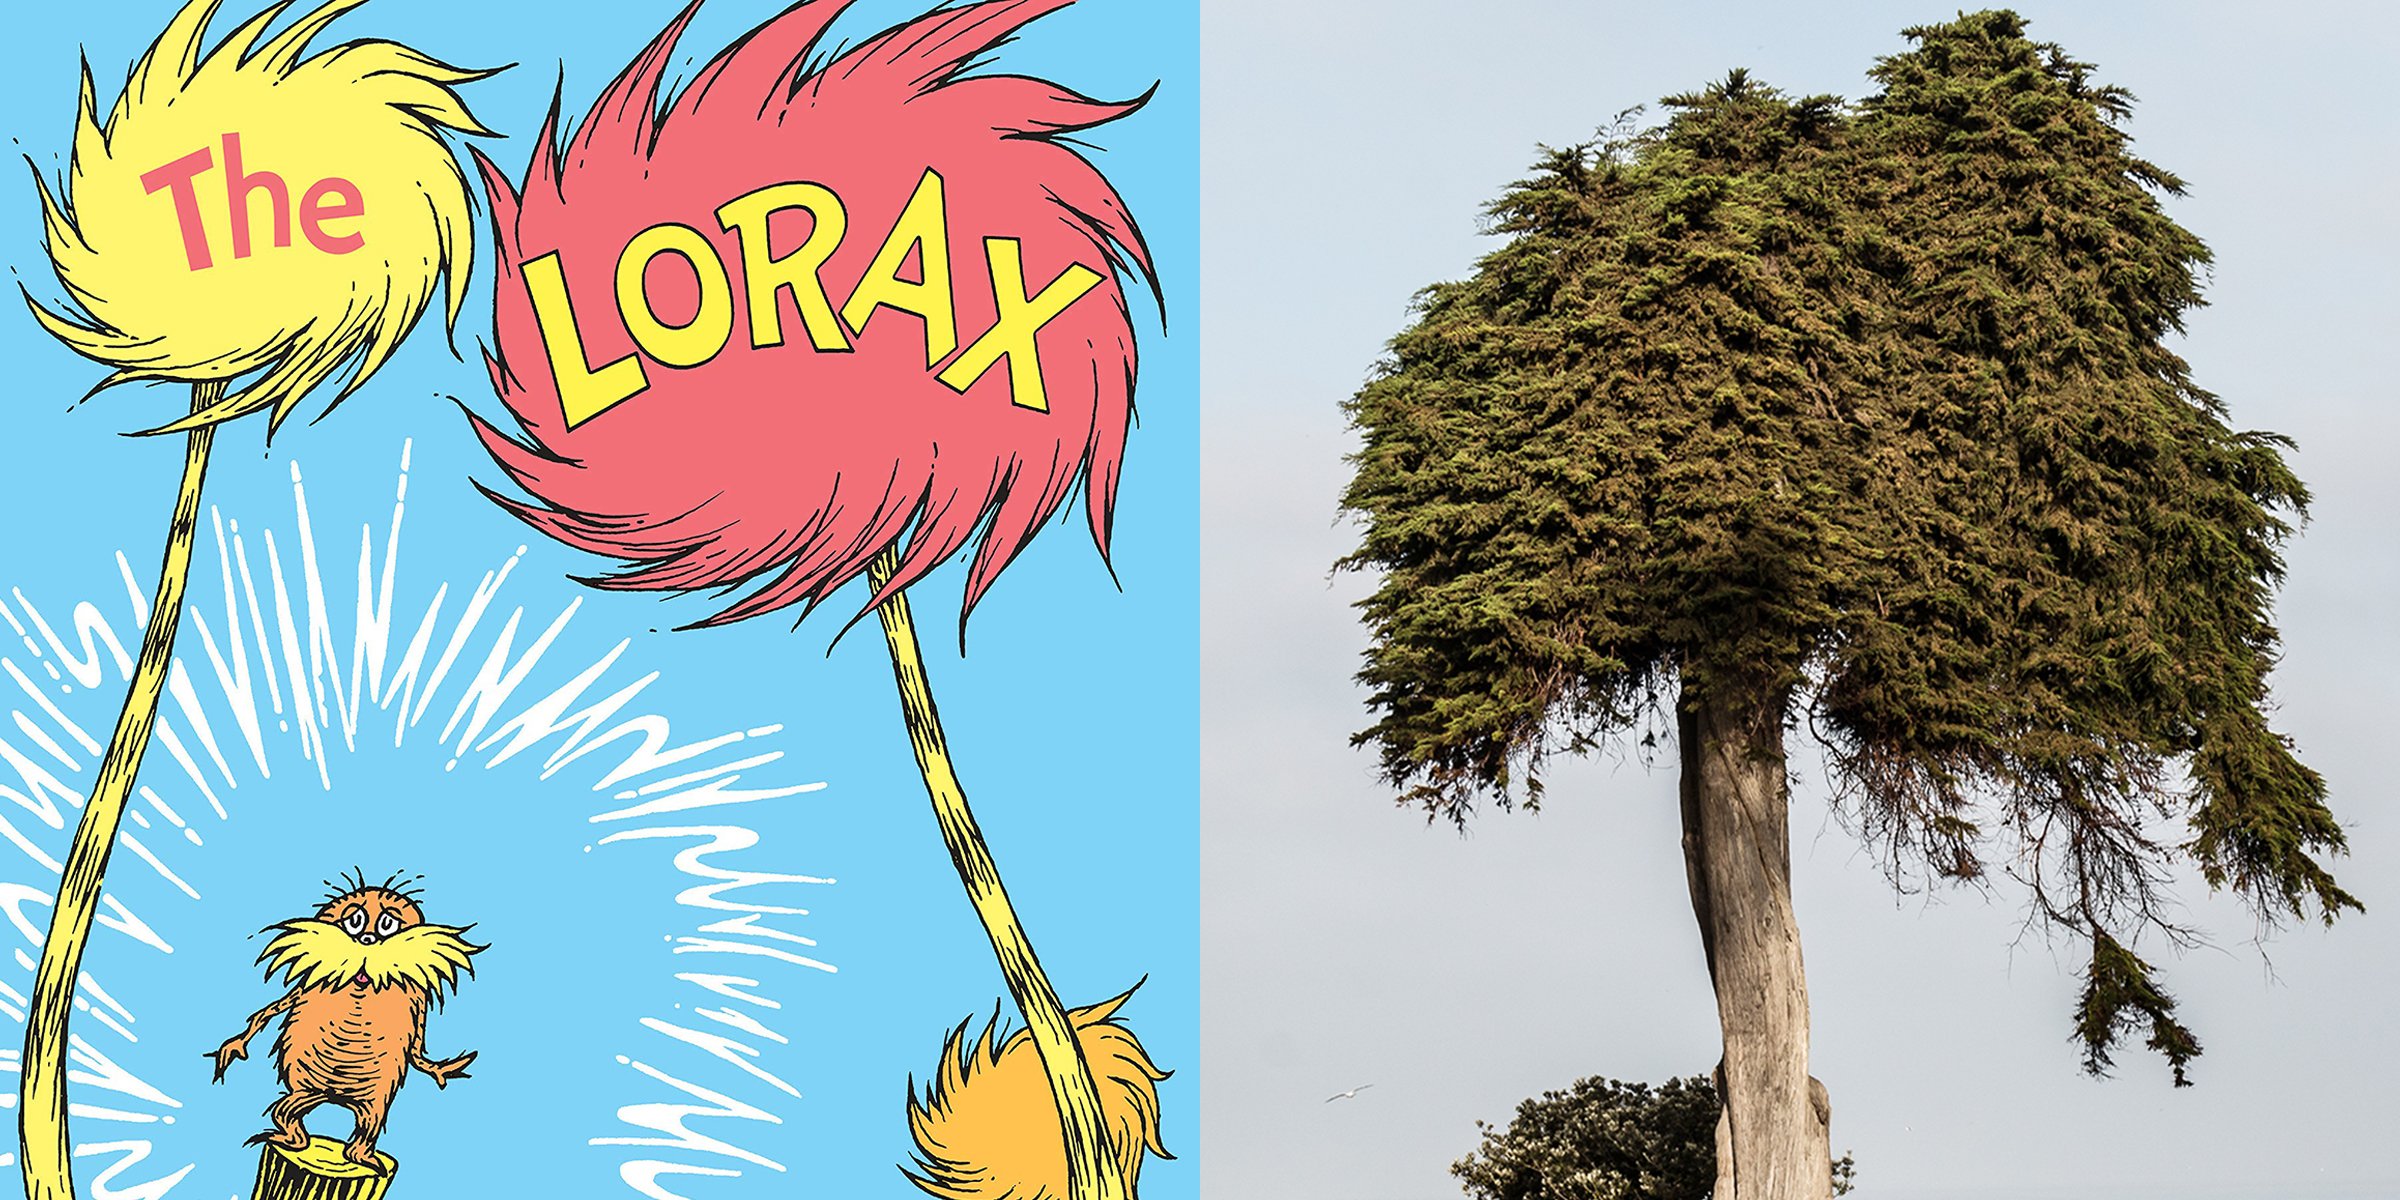 Monterey Cypress tree thought to have inspired the Dr. Seuss classic 'The Lorax' falls over